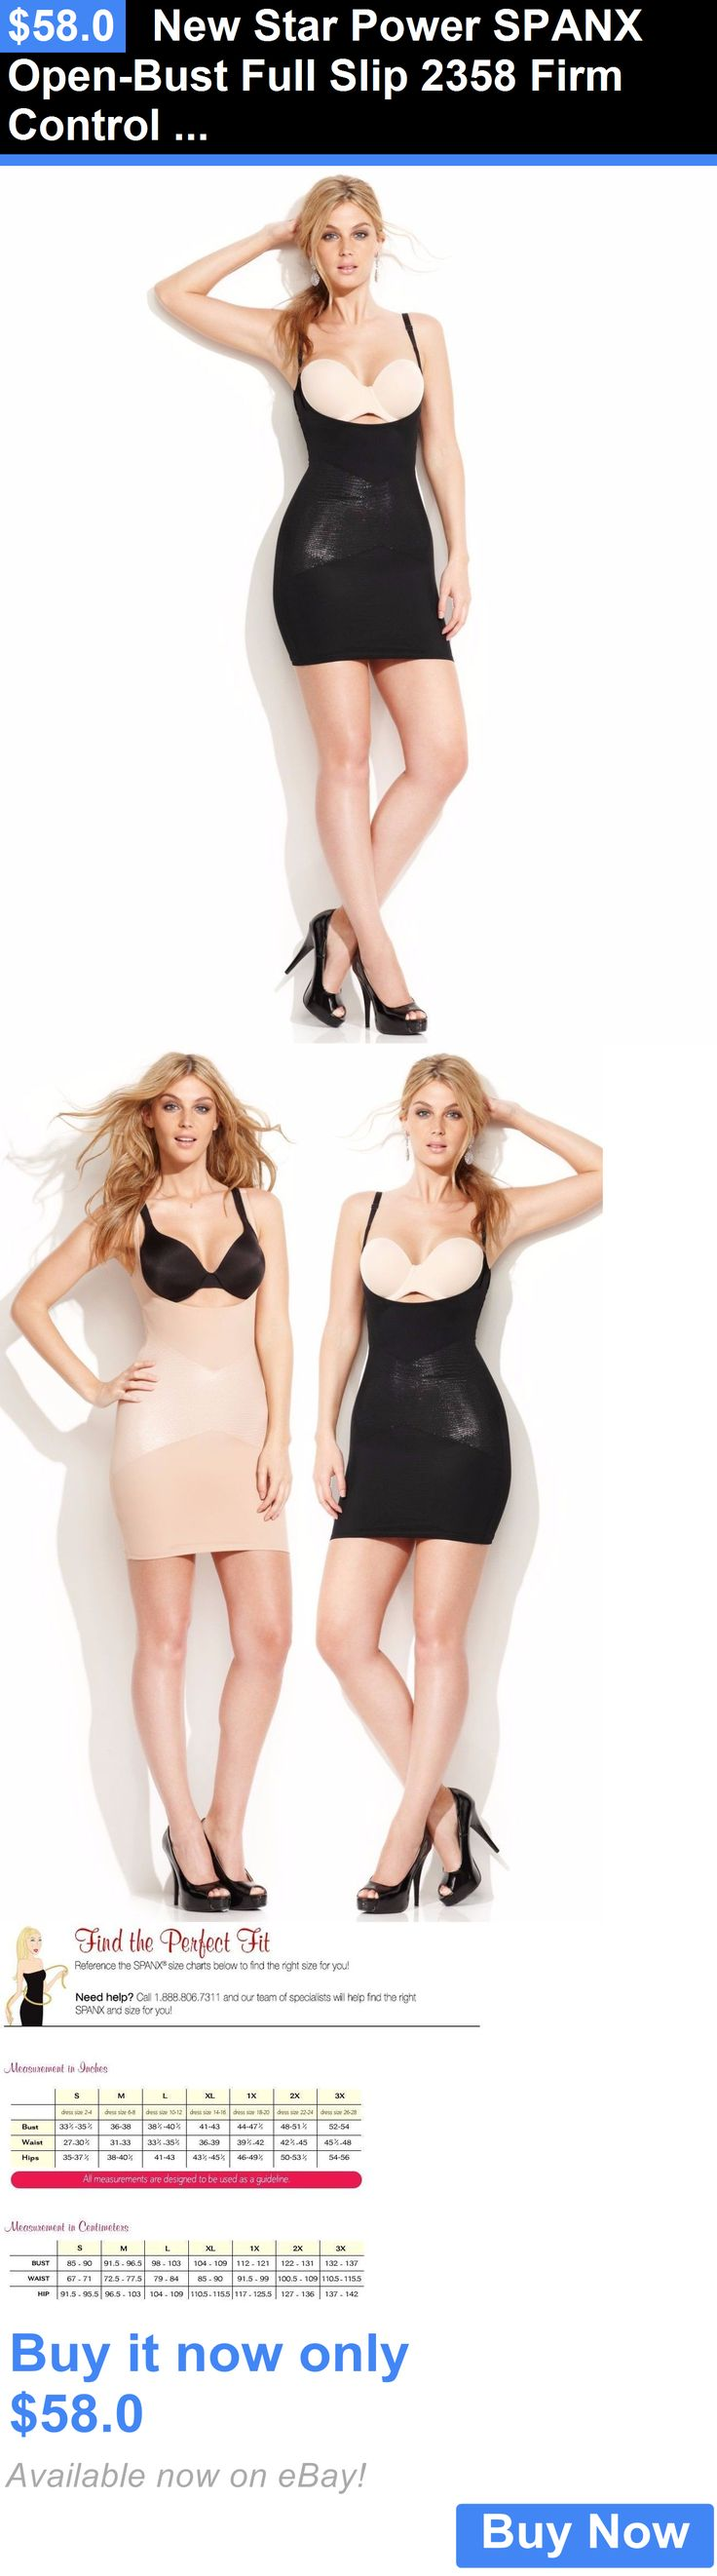 Women Shapewear: New Star Power Spanx Open-Bust Full Slip 2358 Firm Control Lady Shapewear Xl BUY IT NOW ONLY: $58.0